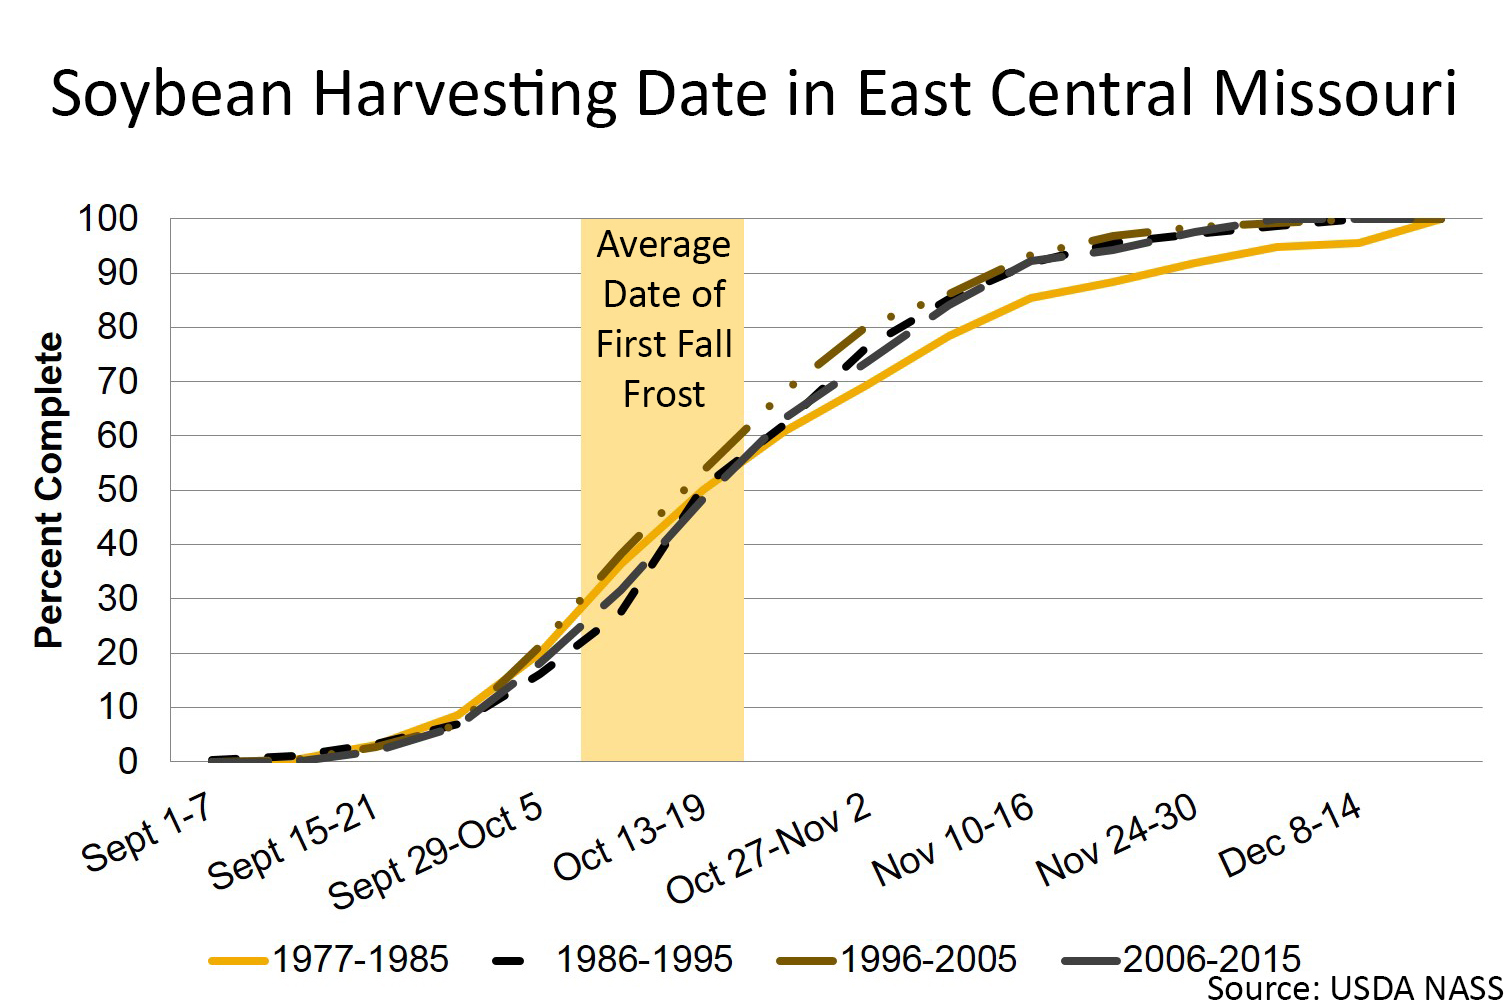 Soybean harvesting date in east central Missouri chart